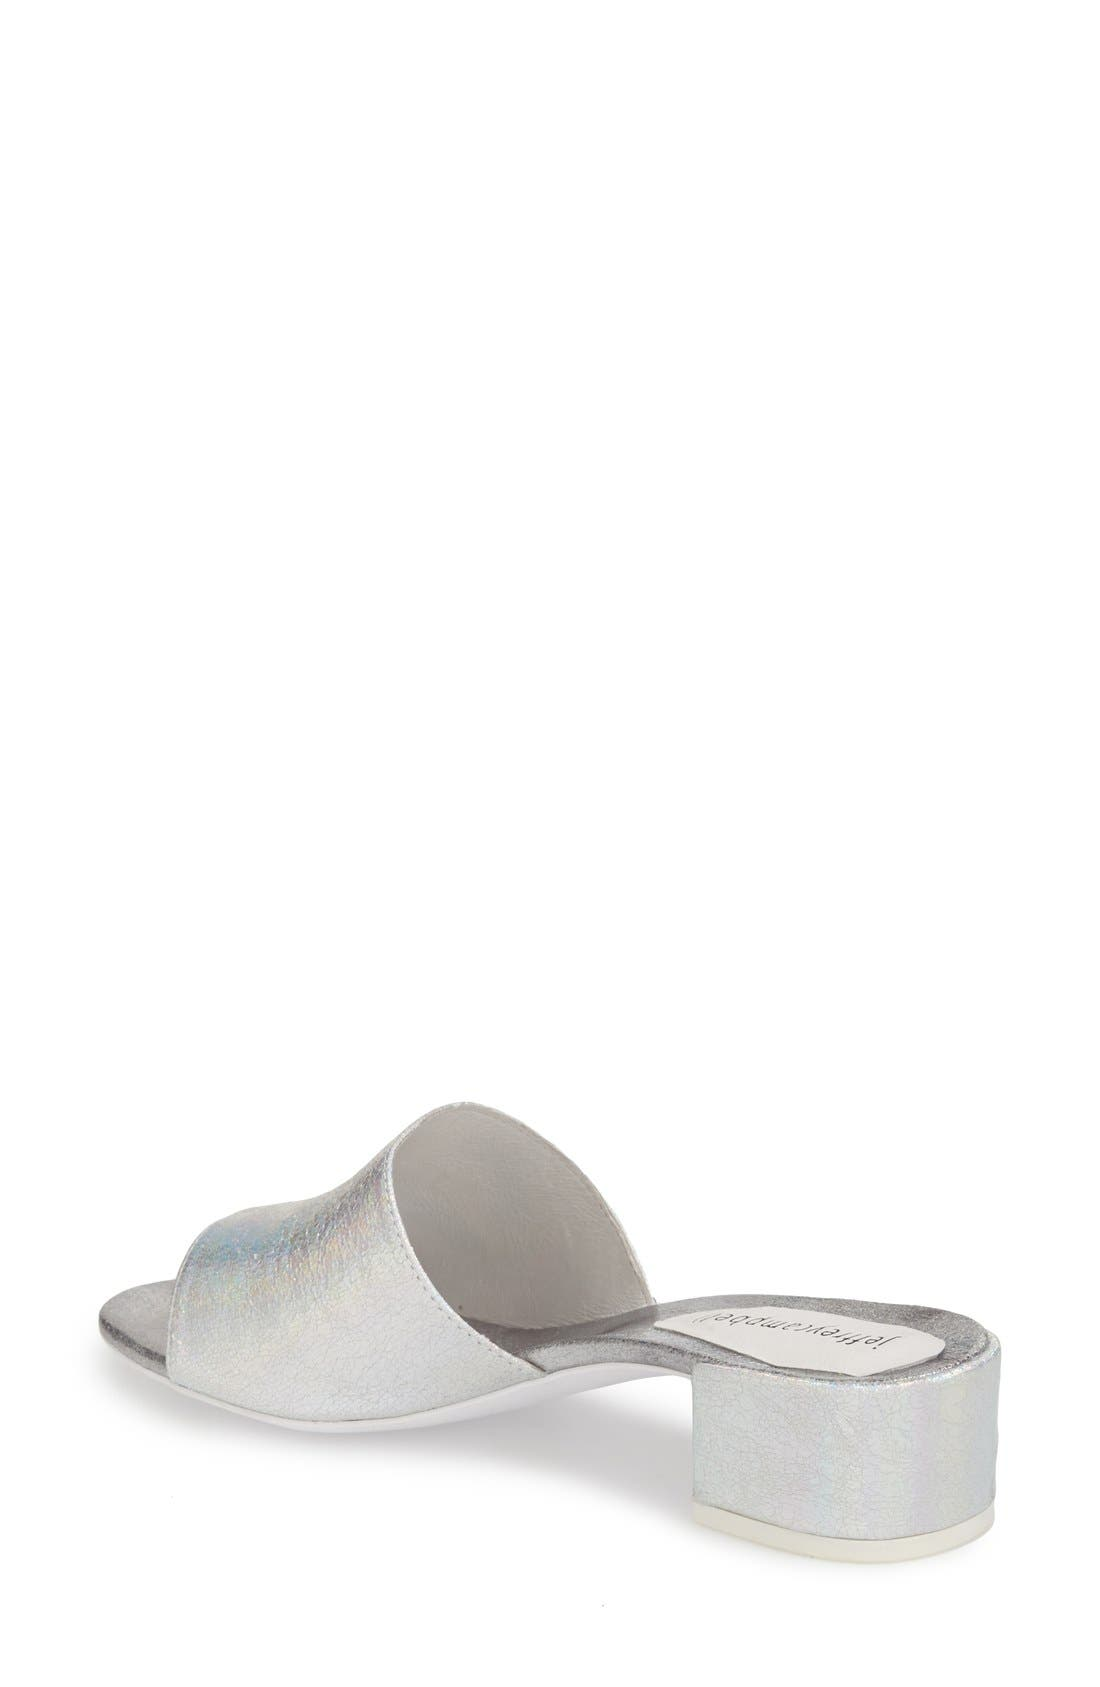 'Beaton' Slide Sandal,                             Alternate thumbnail 20, color,